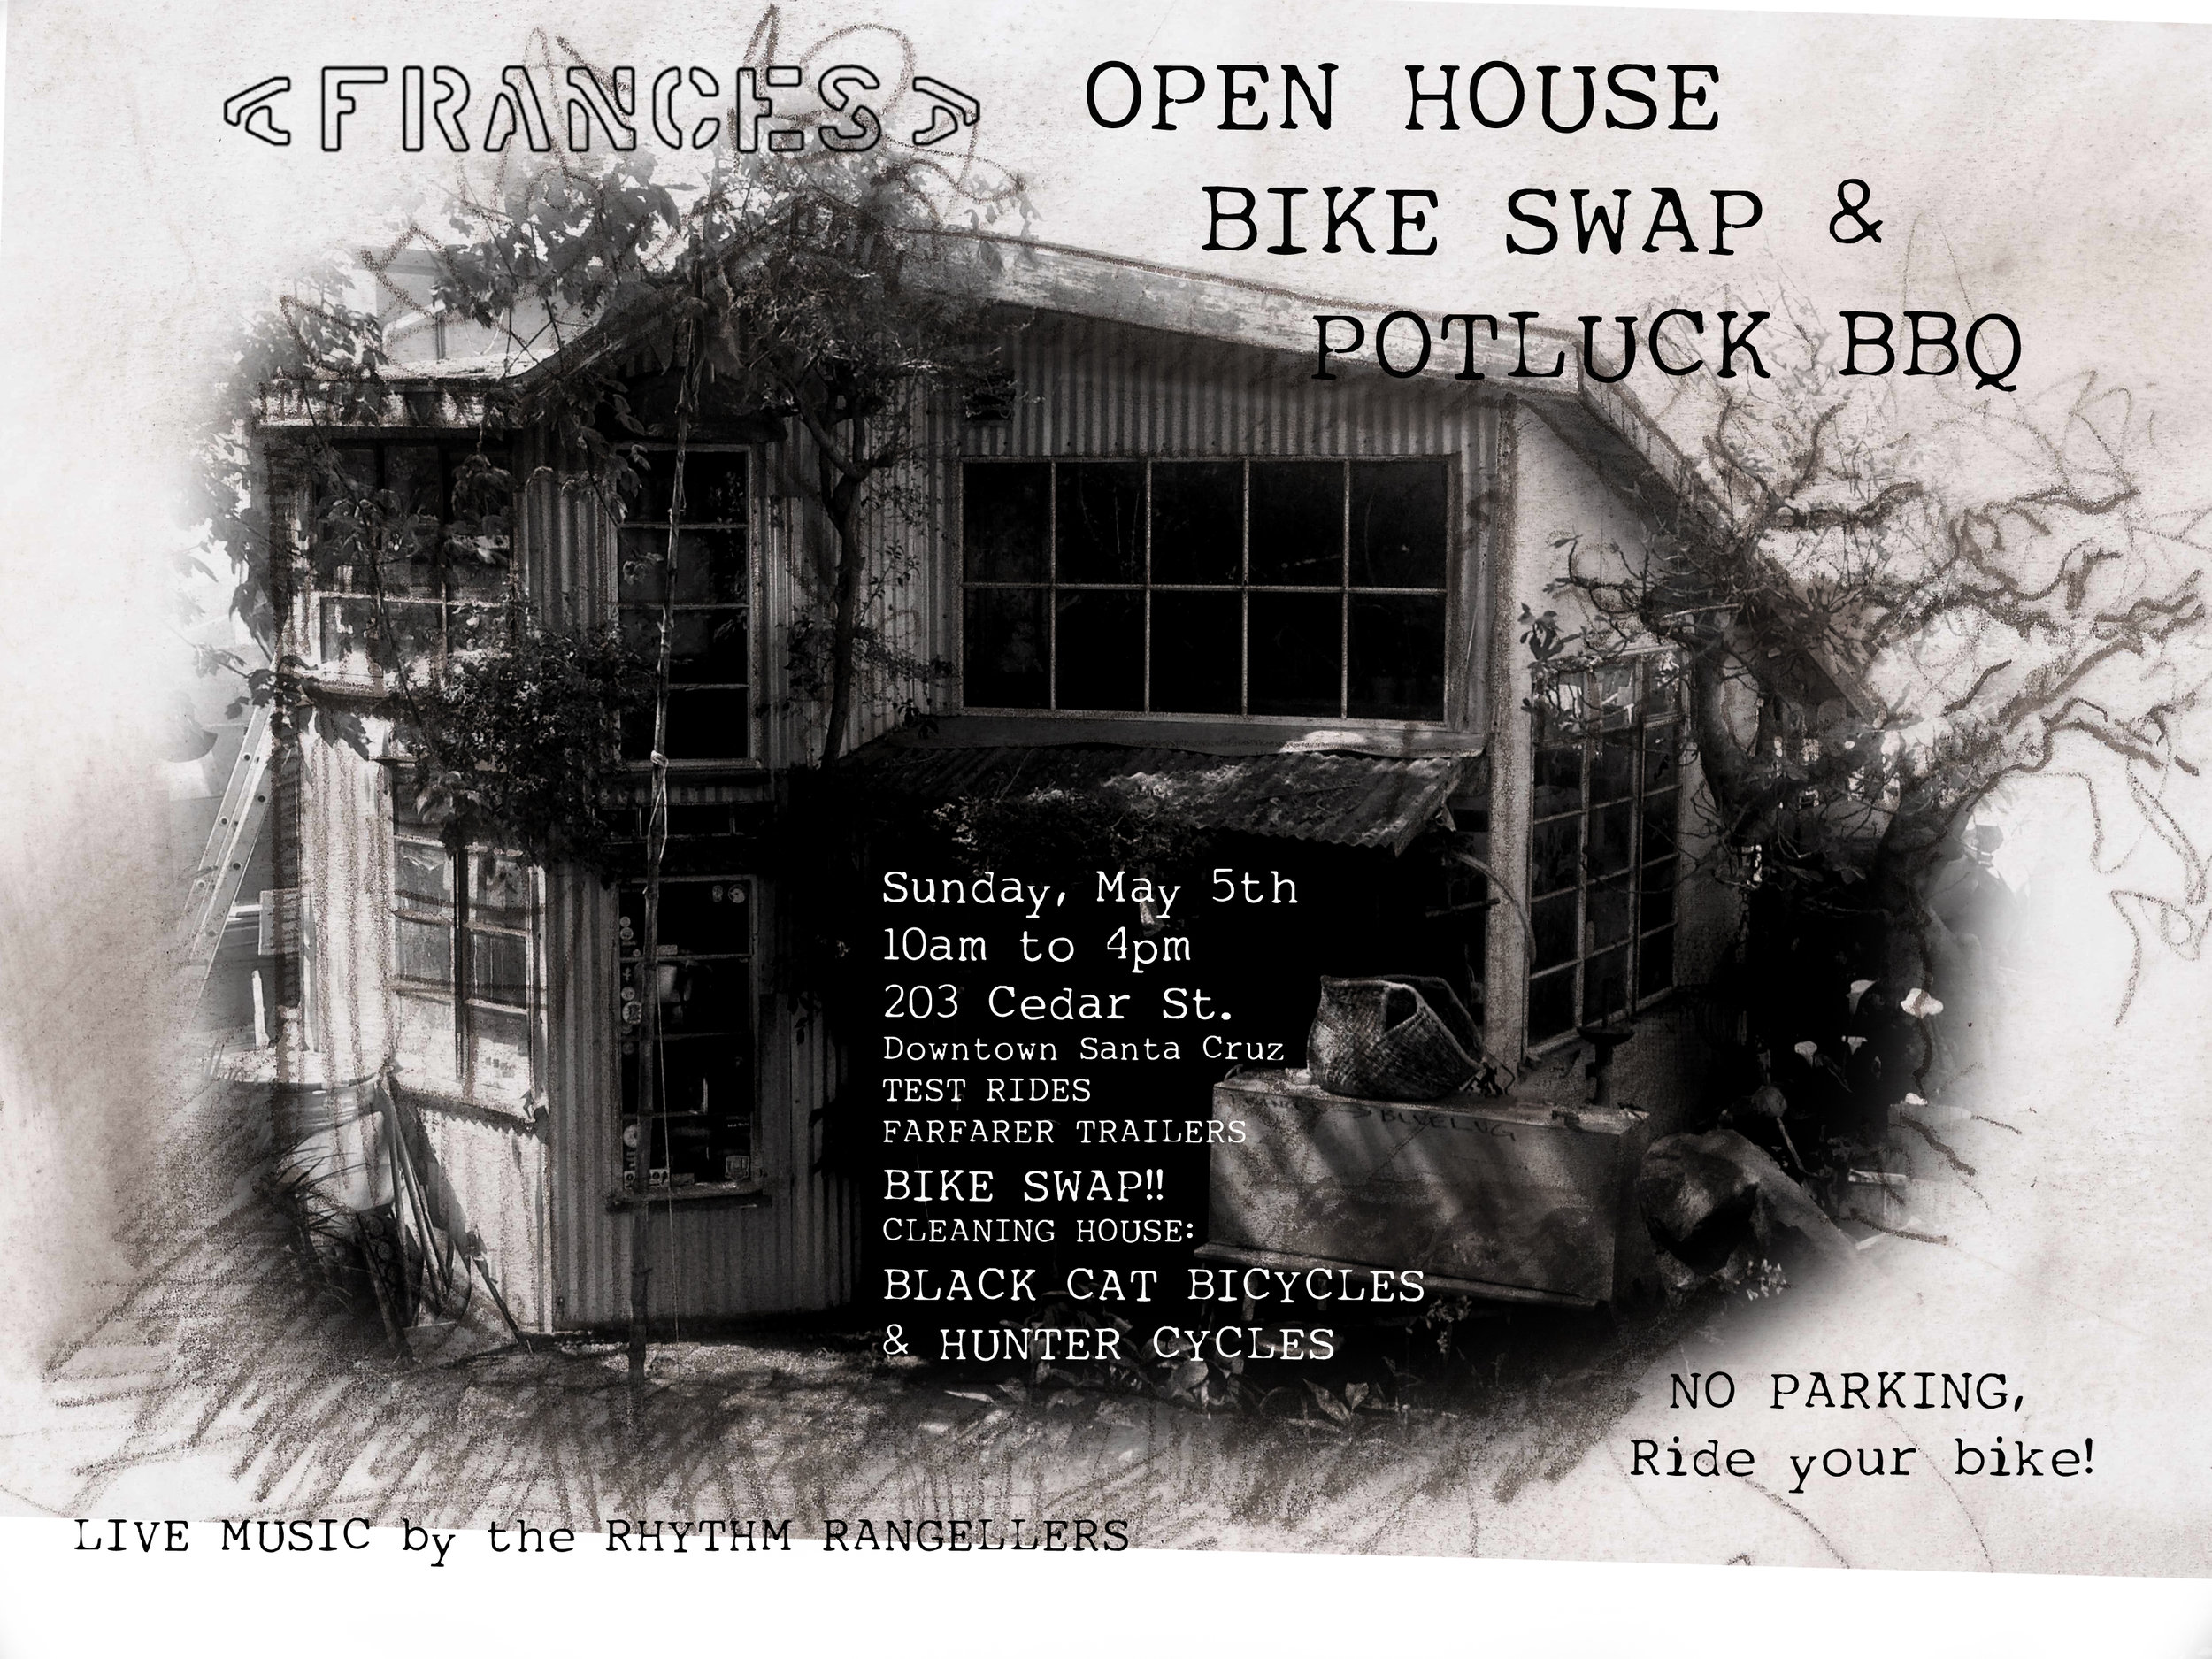 Open house this Sunday May 5th